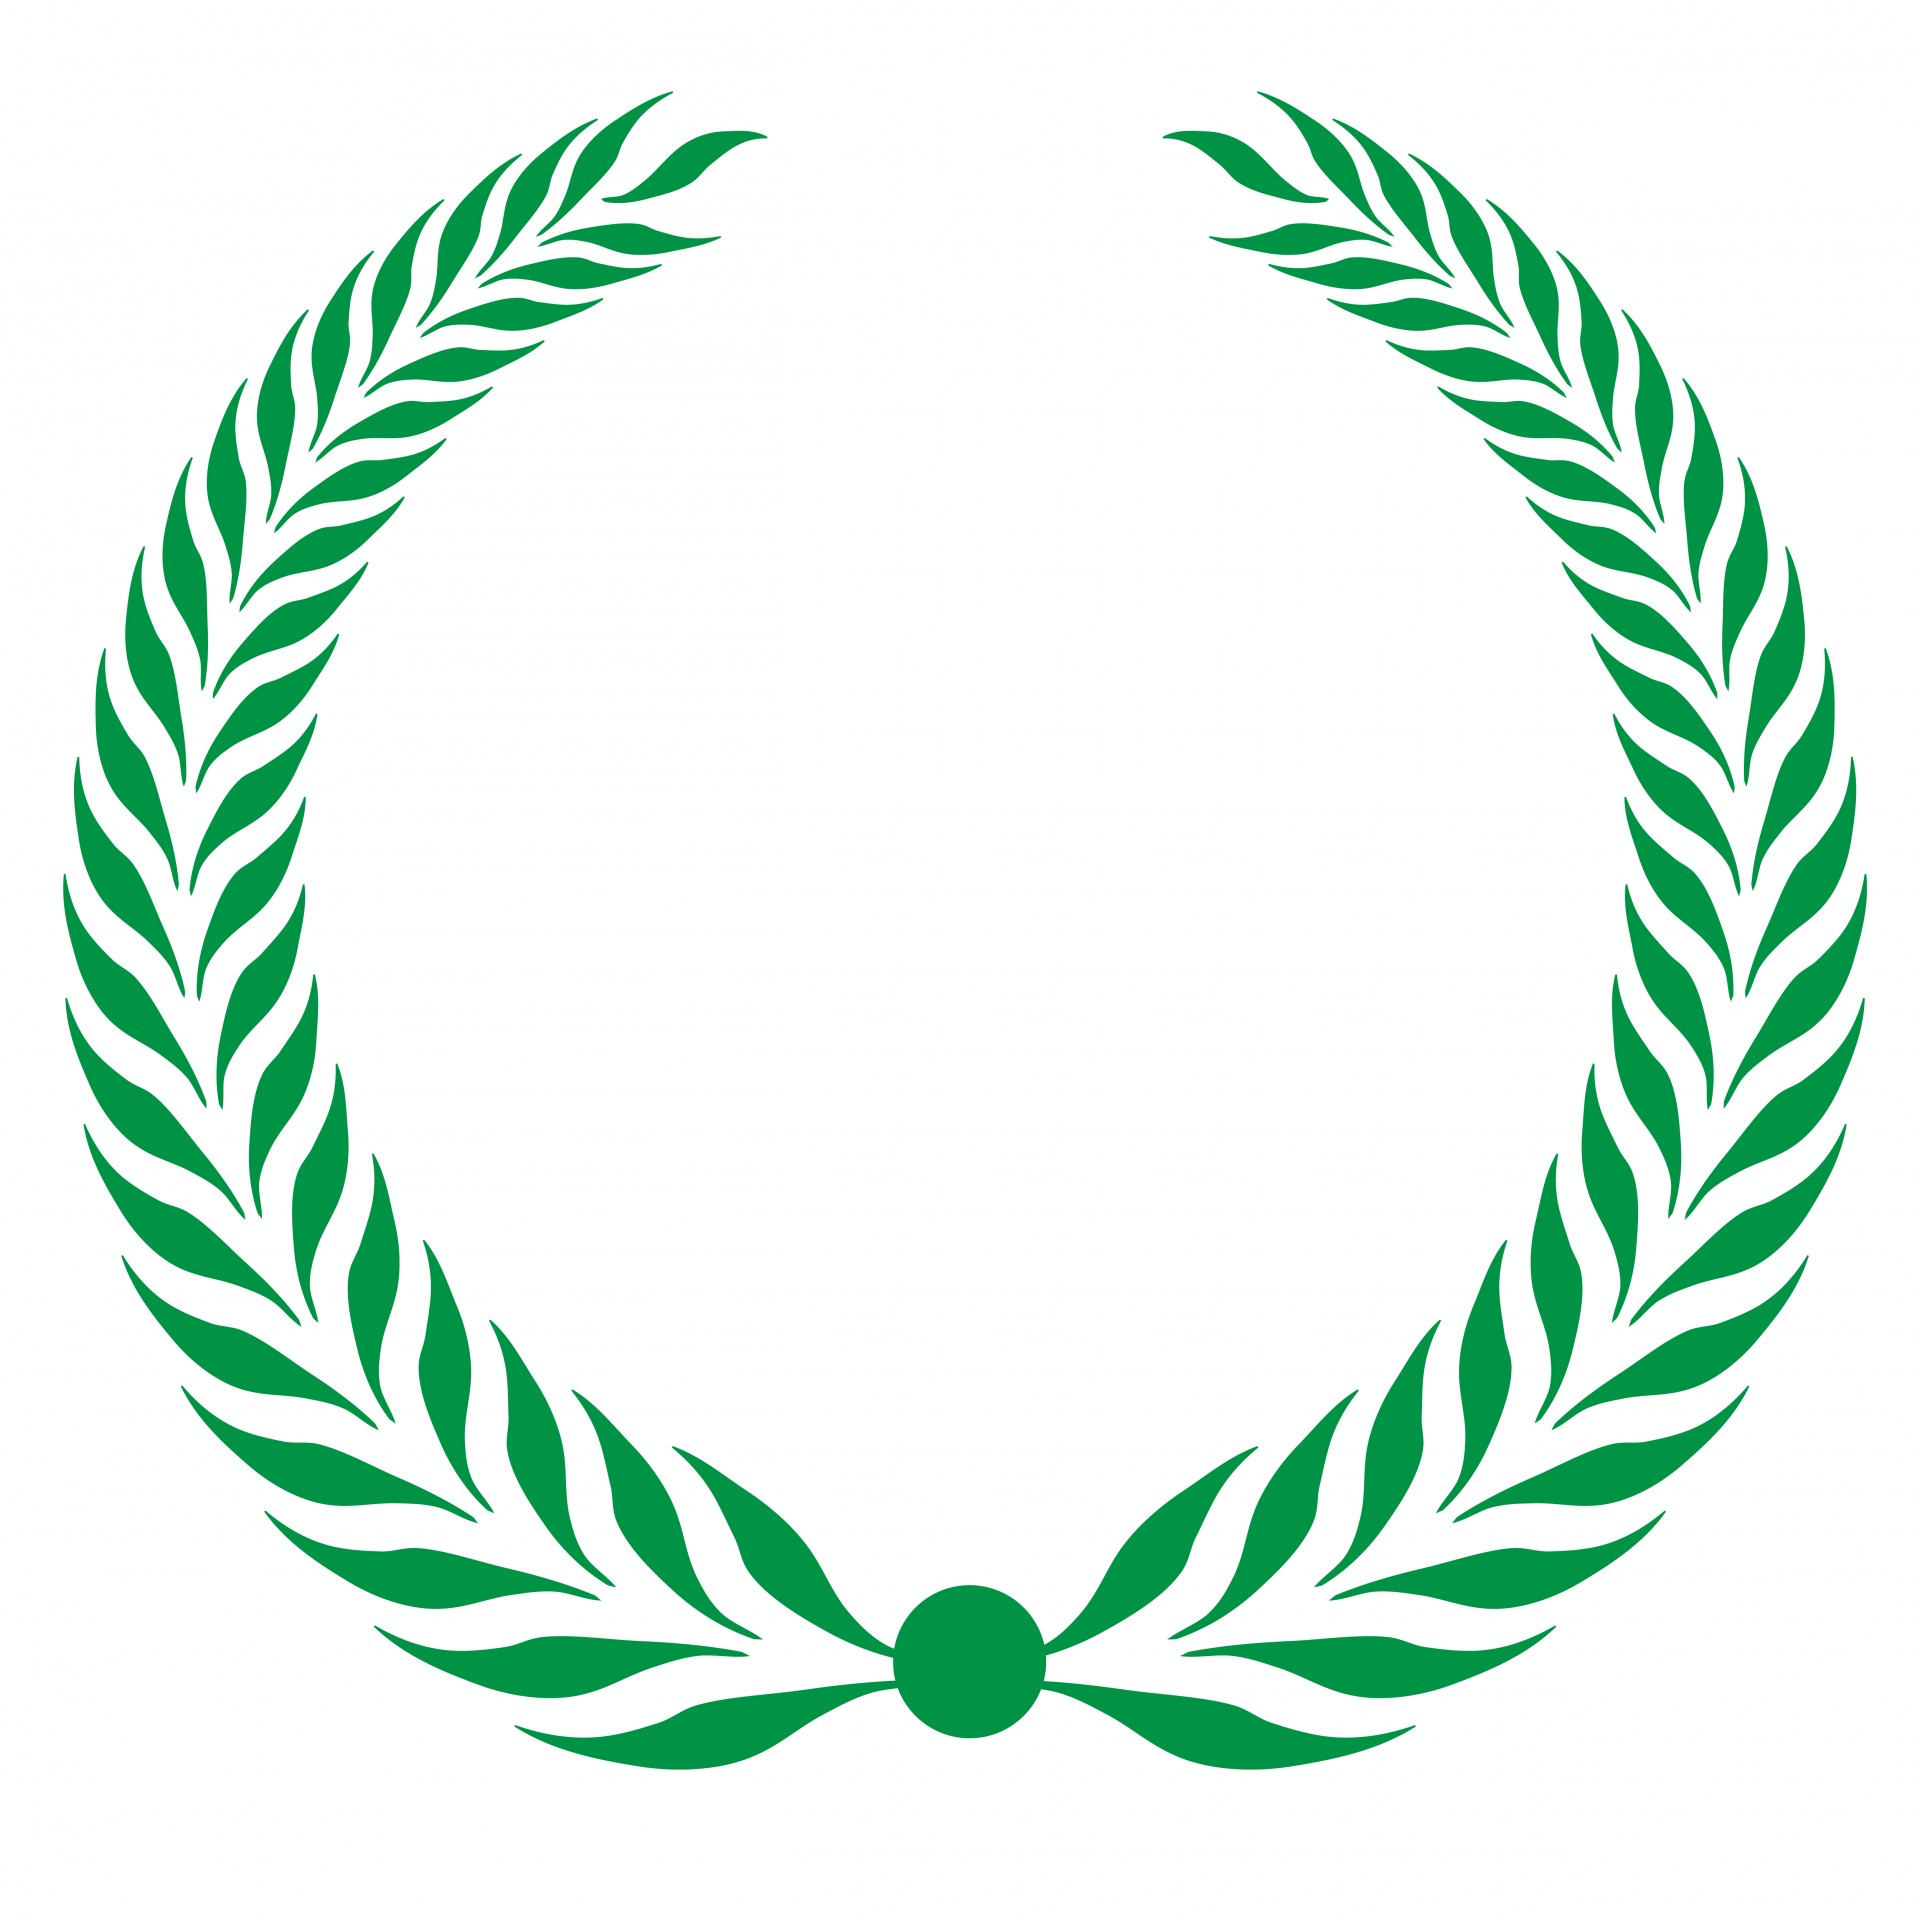 Laurel Wreath Clipart Green Free Stock Photo.